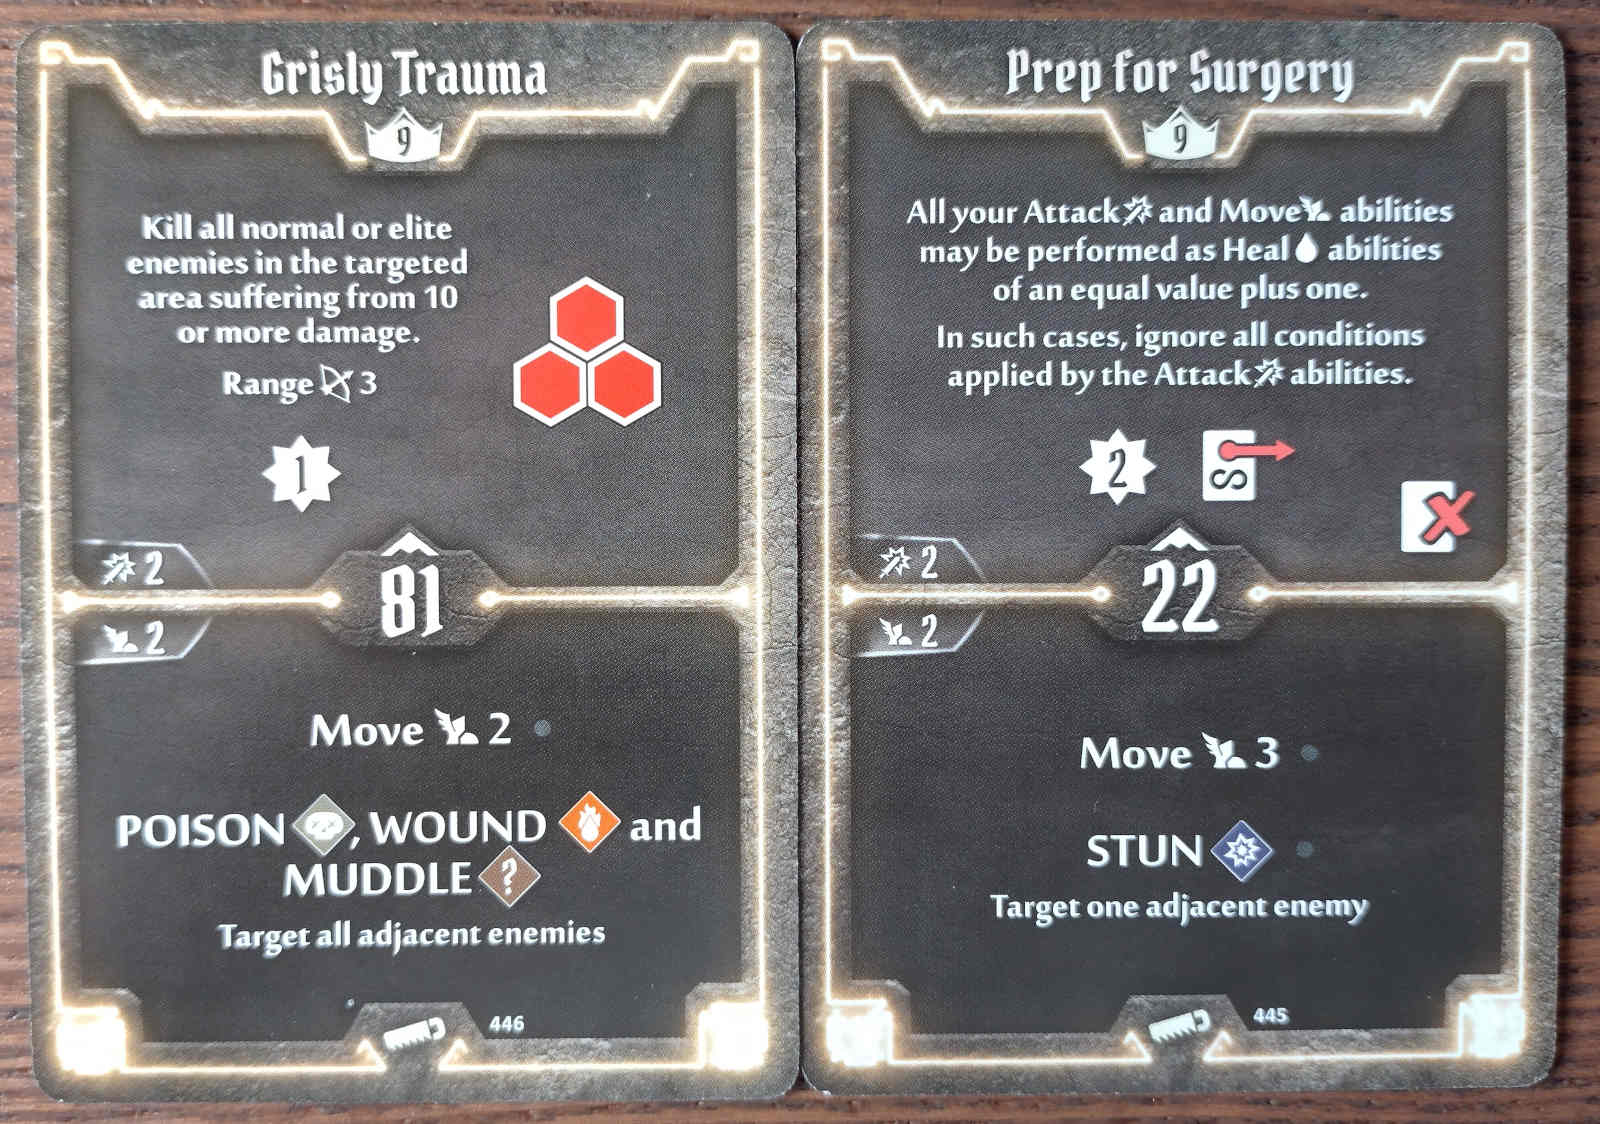 Level 9 Sawbones cards - Grisly Trauma and Prep for Surgery